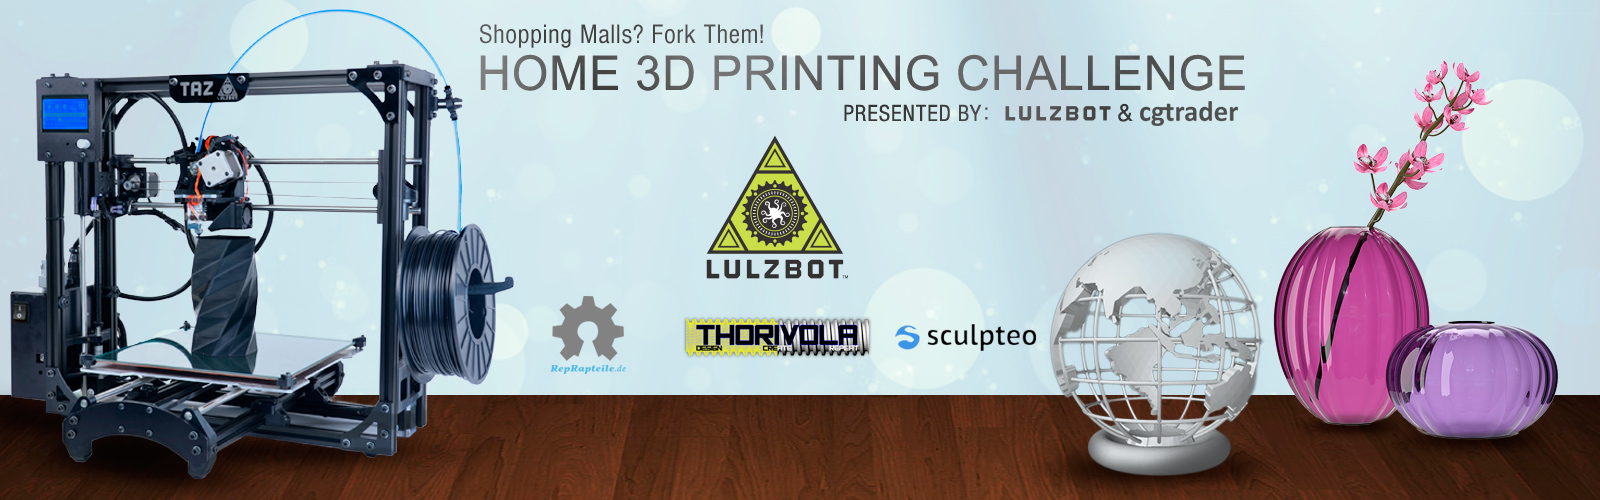 Home 3D Printing Challenge